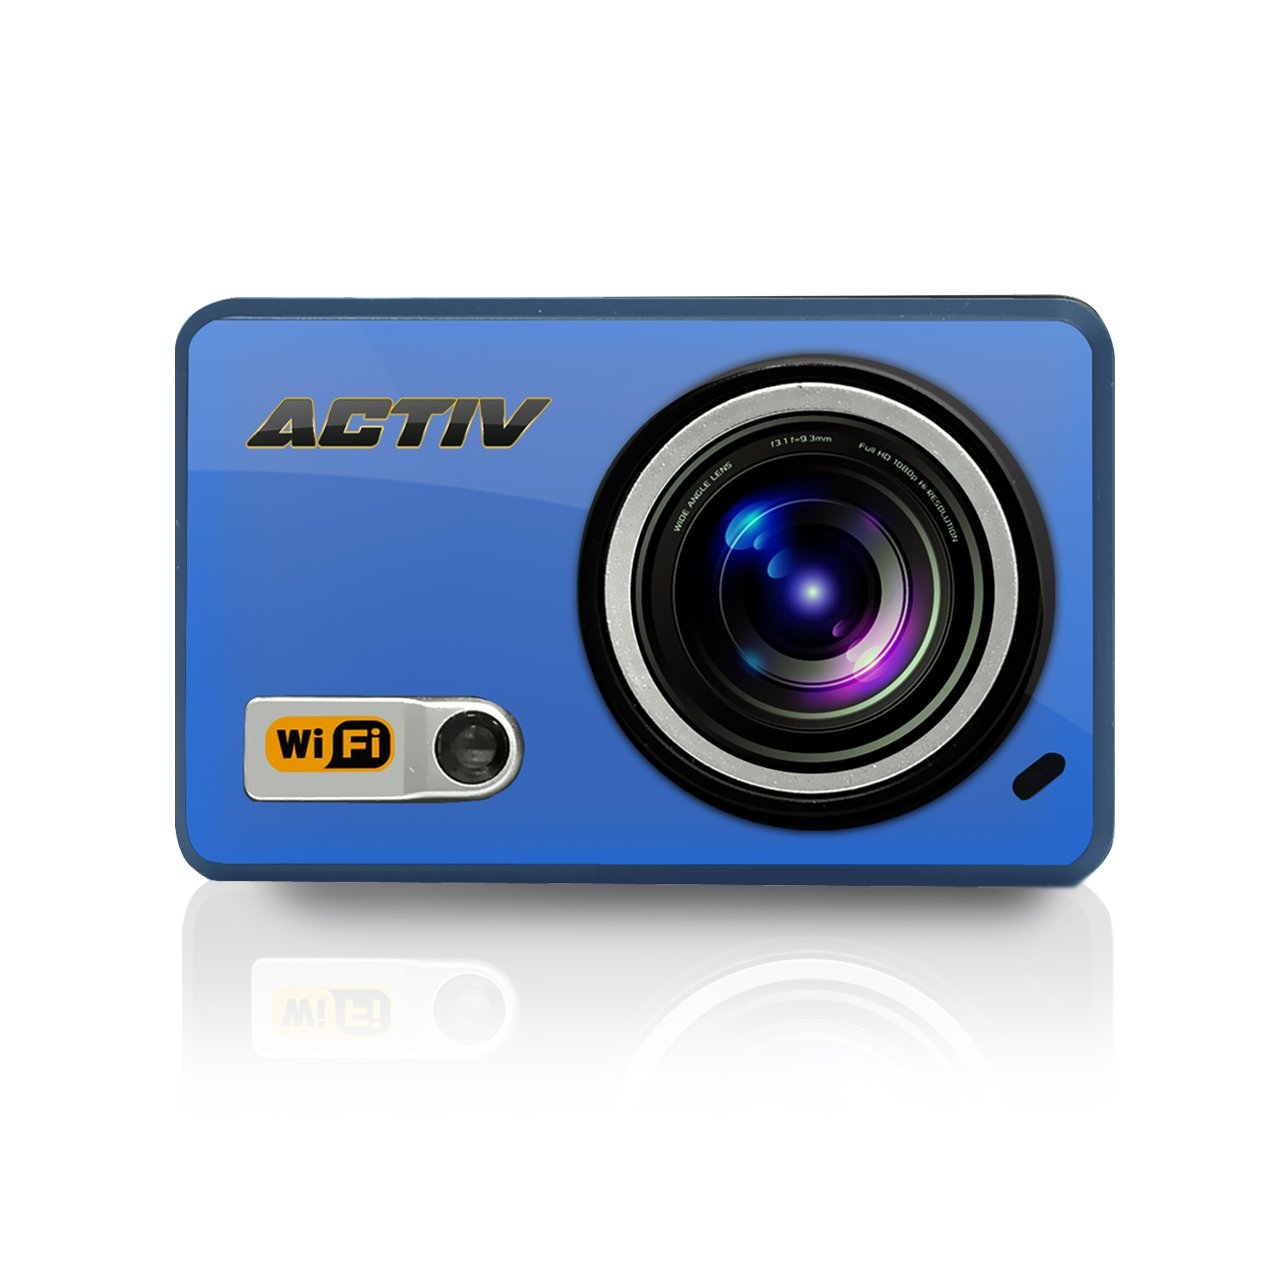 Sound Around GDV288BL HD Video Recording Gear Pro ACTIV Full HD 1080p Hi-Res Mini Sports Action Camera and Camcorder with Wi-Fi